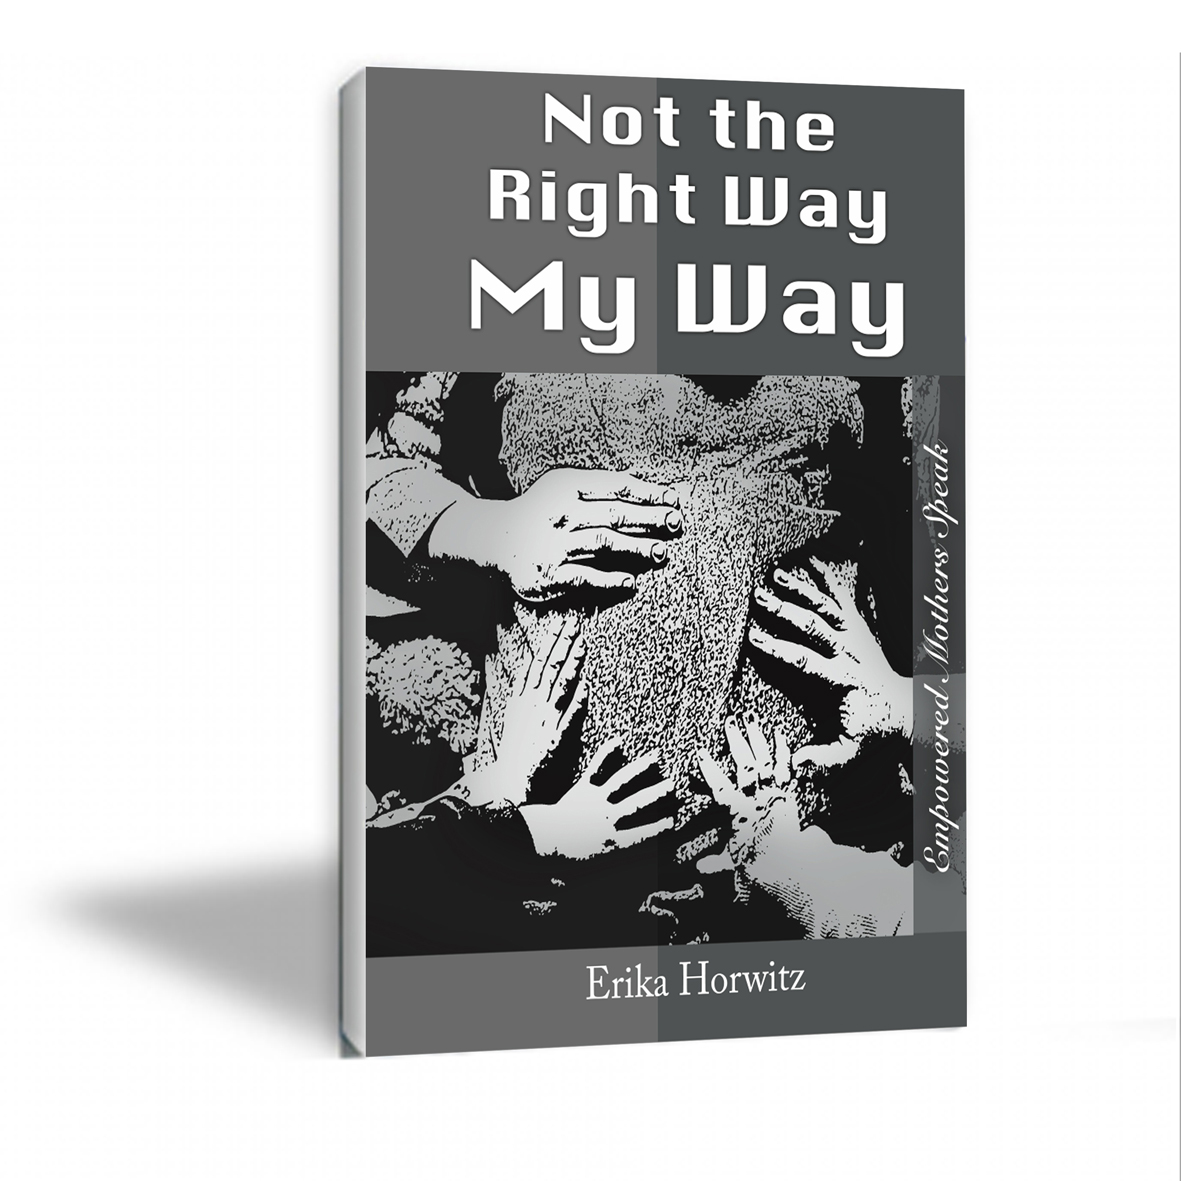 Book Cover Design by mariakipioti - Entry No. 20 in the Book Cover Design Contest Not the Right Way, My Way: Empowered Mothers  Speak.